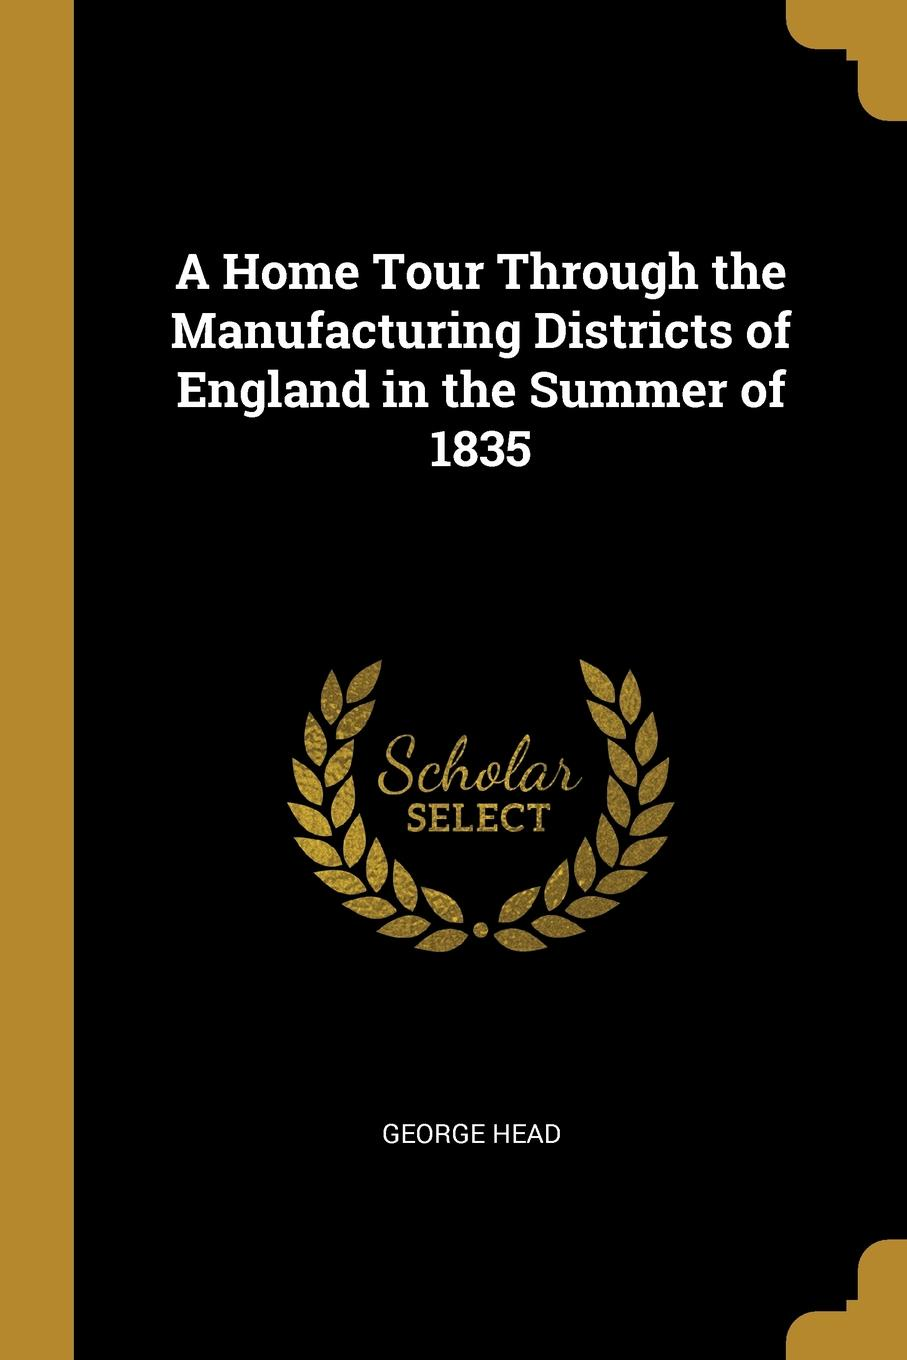 George Head A Home Tour Through the Manufacturing Districts of England in the Summer of 1835